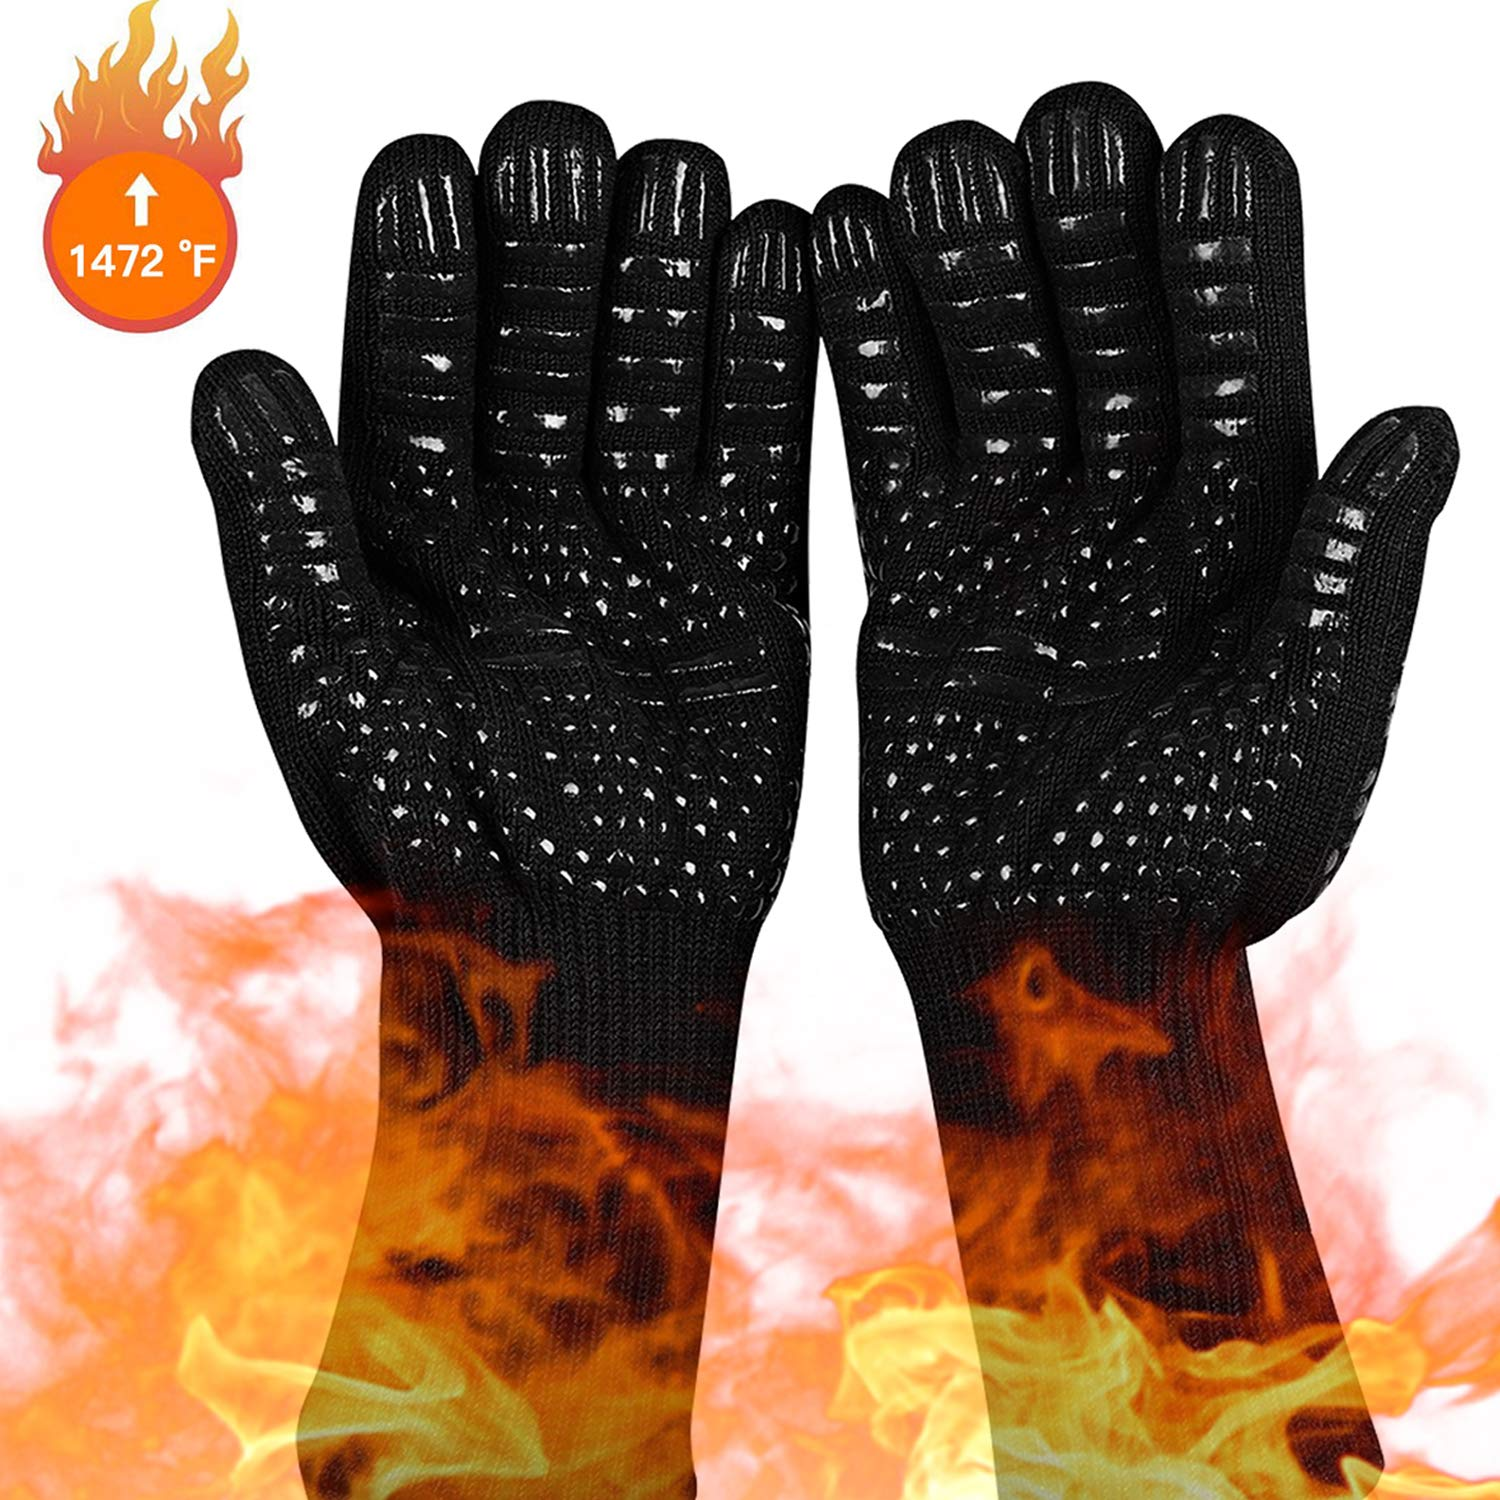 HULIONS BBQ Gloves 1472℉ Extreme Heat Resistant Grill Gloves Premium Insulated Oven Mitts with L5 Cut Resistant for Cooking, Baking,Cutting, Welding, Smoker Fireplace(1 Pair) by HULIONS